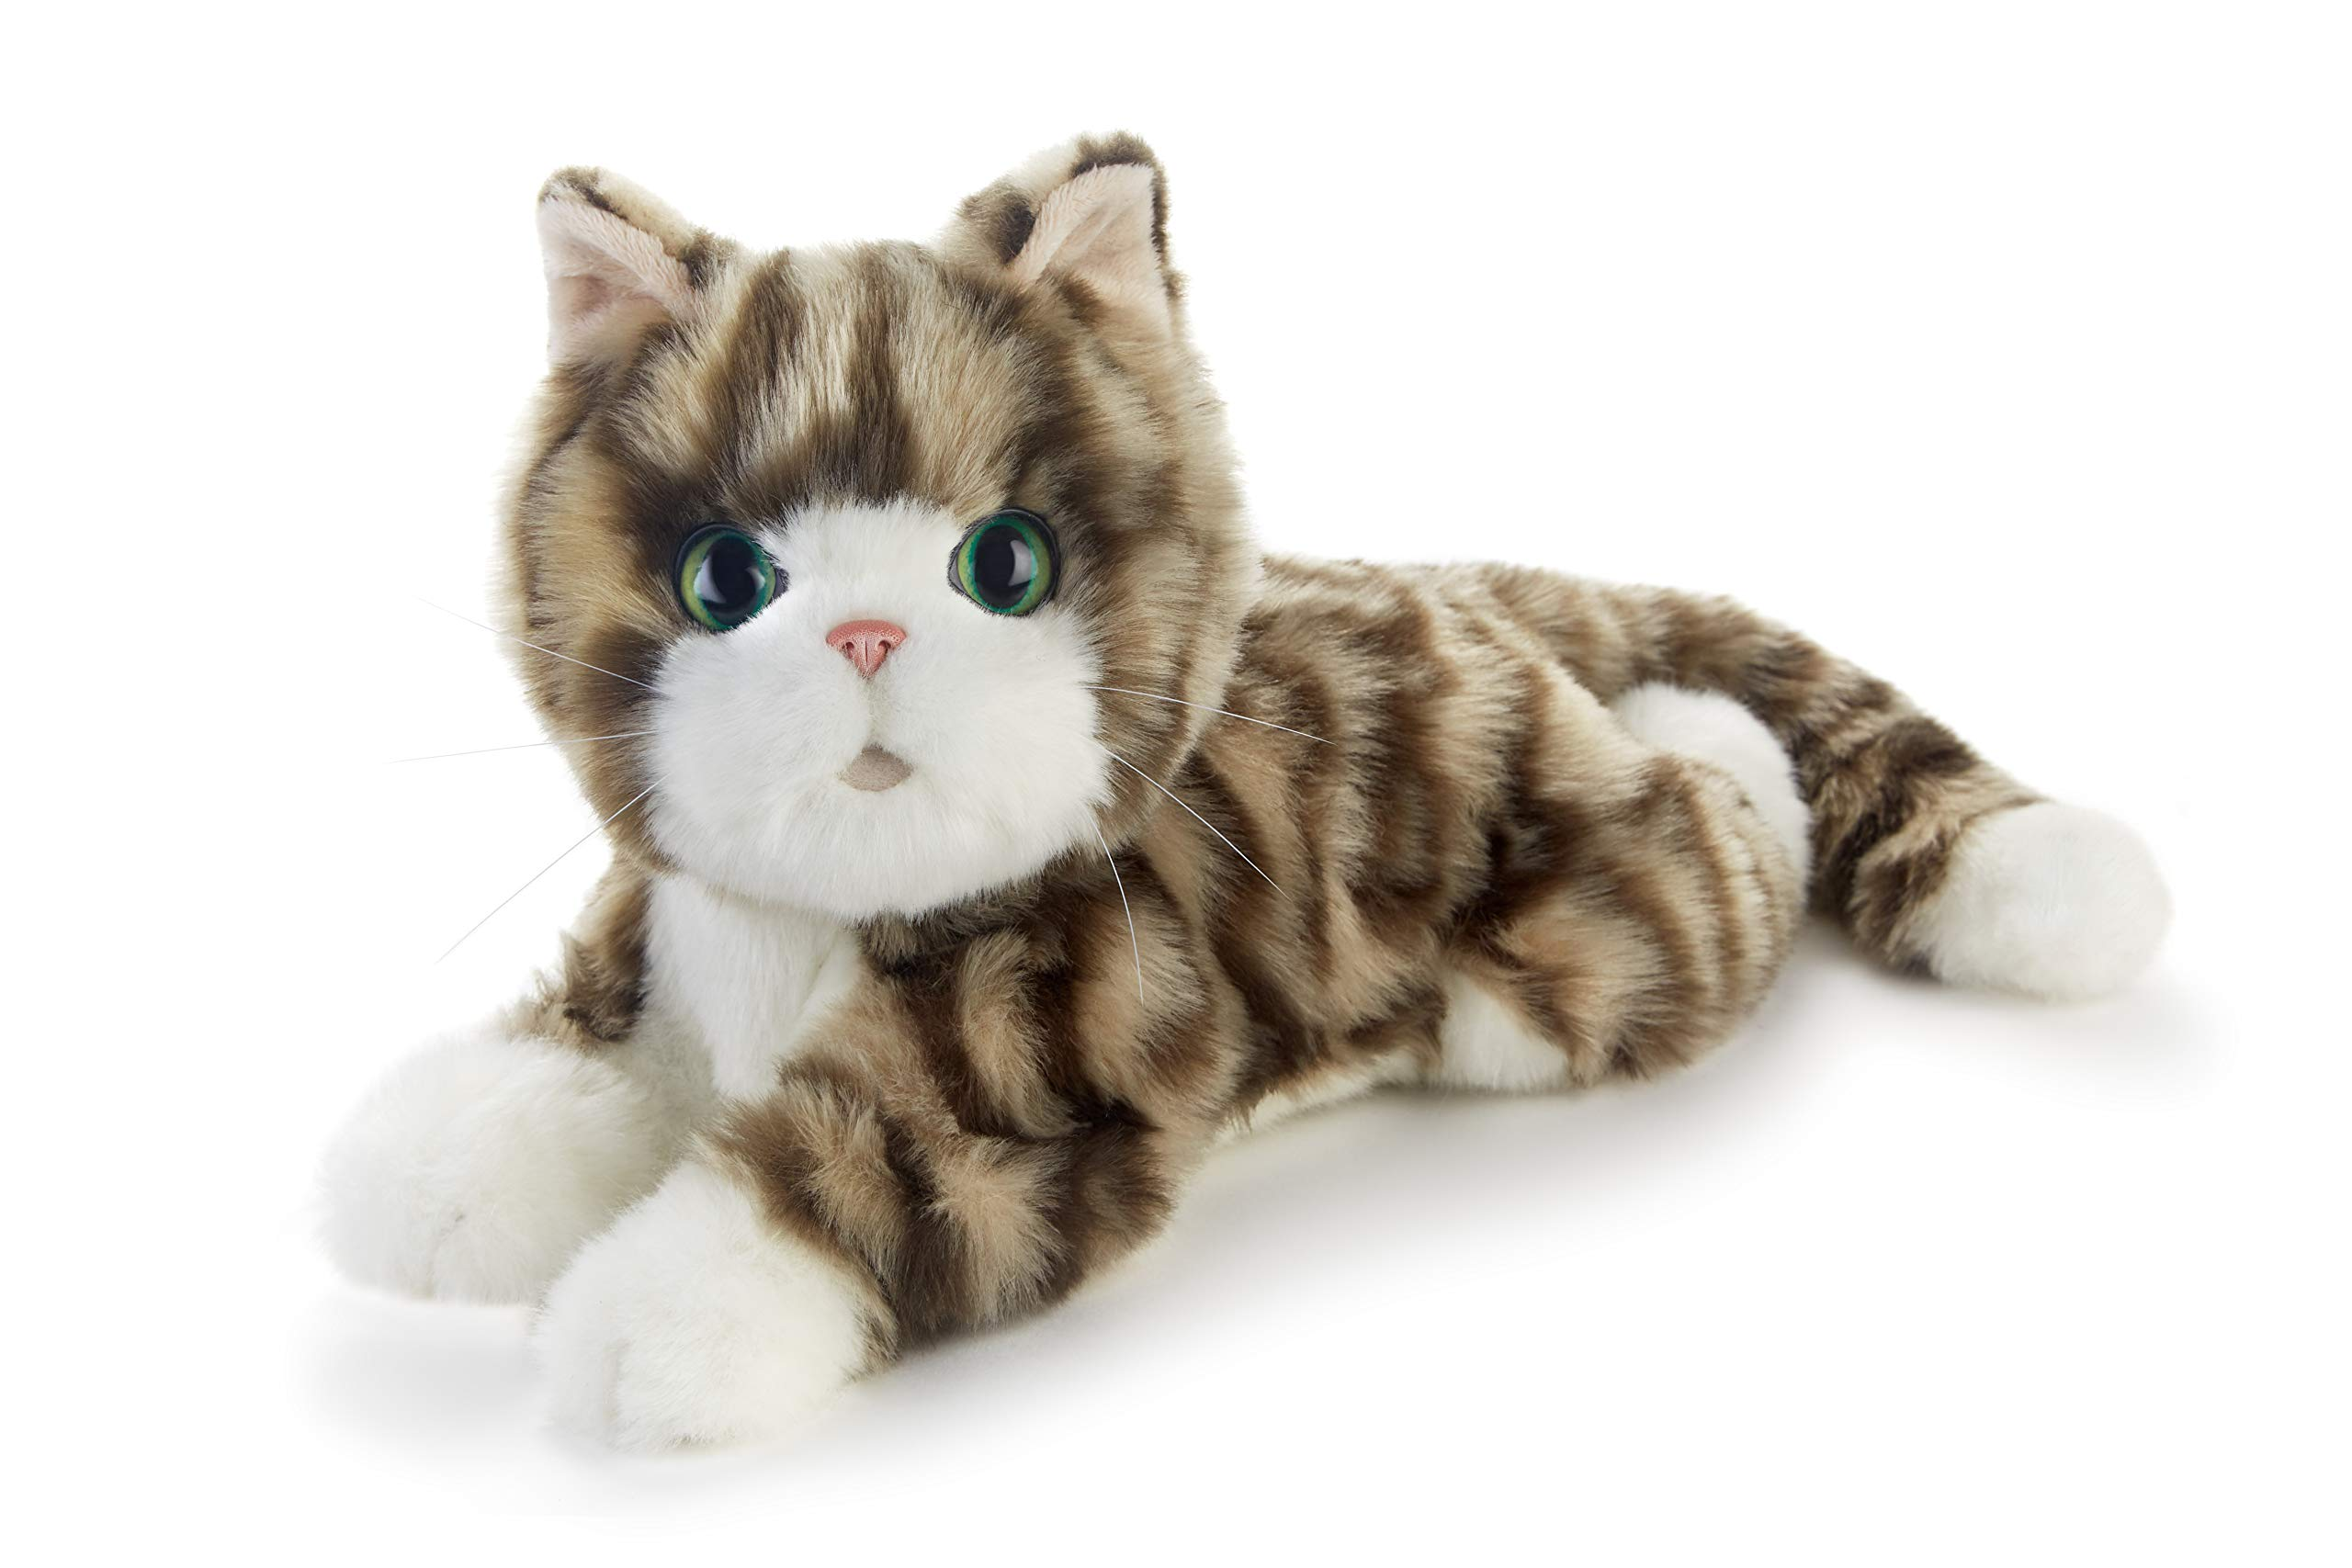 Ageless Innovation, Joy For All Companion Pets, Silver Tabby Kitten, Lifelike & Realistic, Comfort, Joy & Companionship by JOY FOR ALL